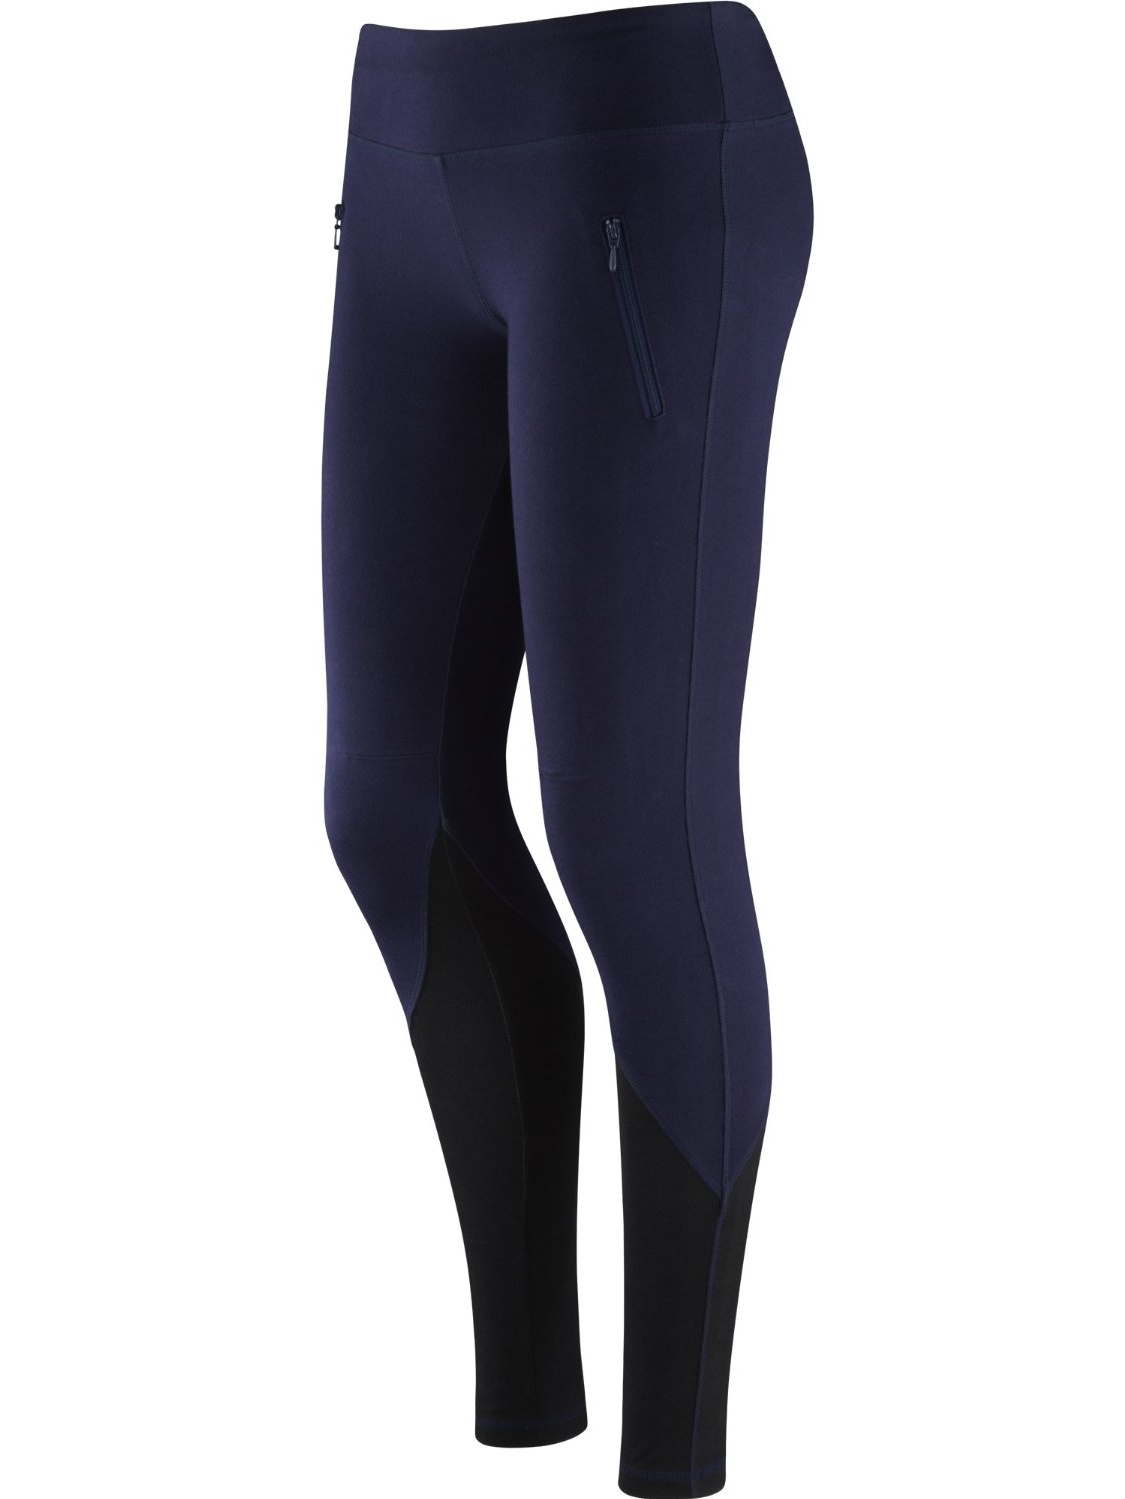 Zumba Fitness Women's Double Zipper Legging by Zumba